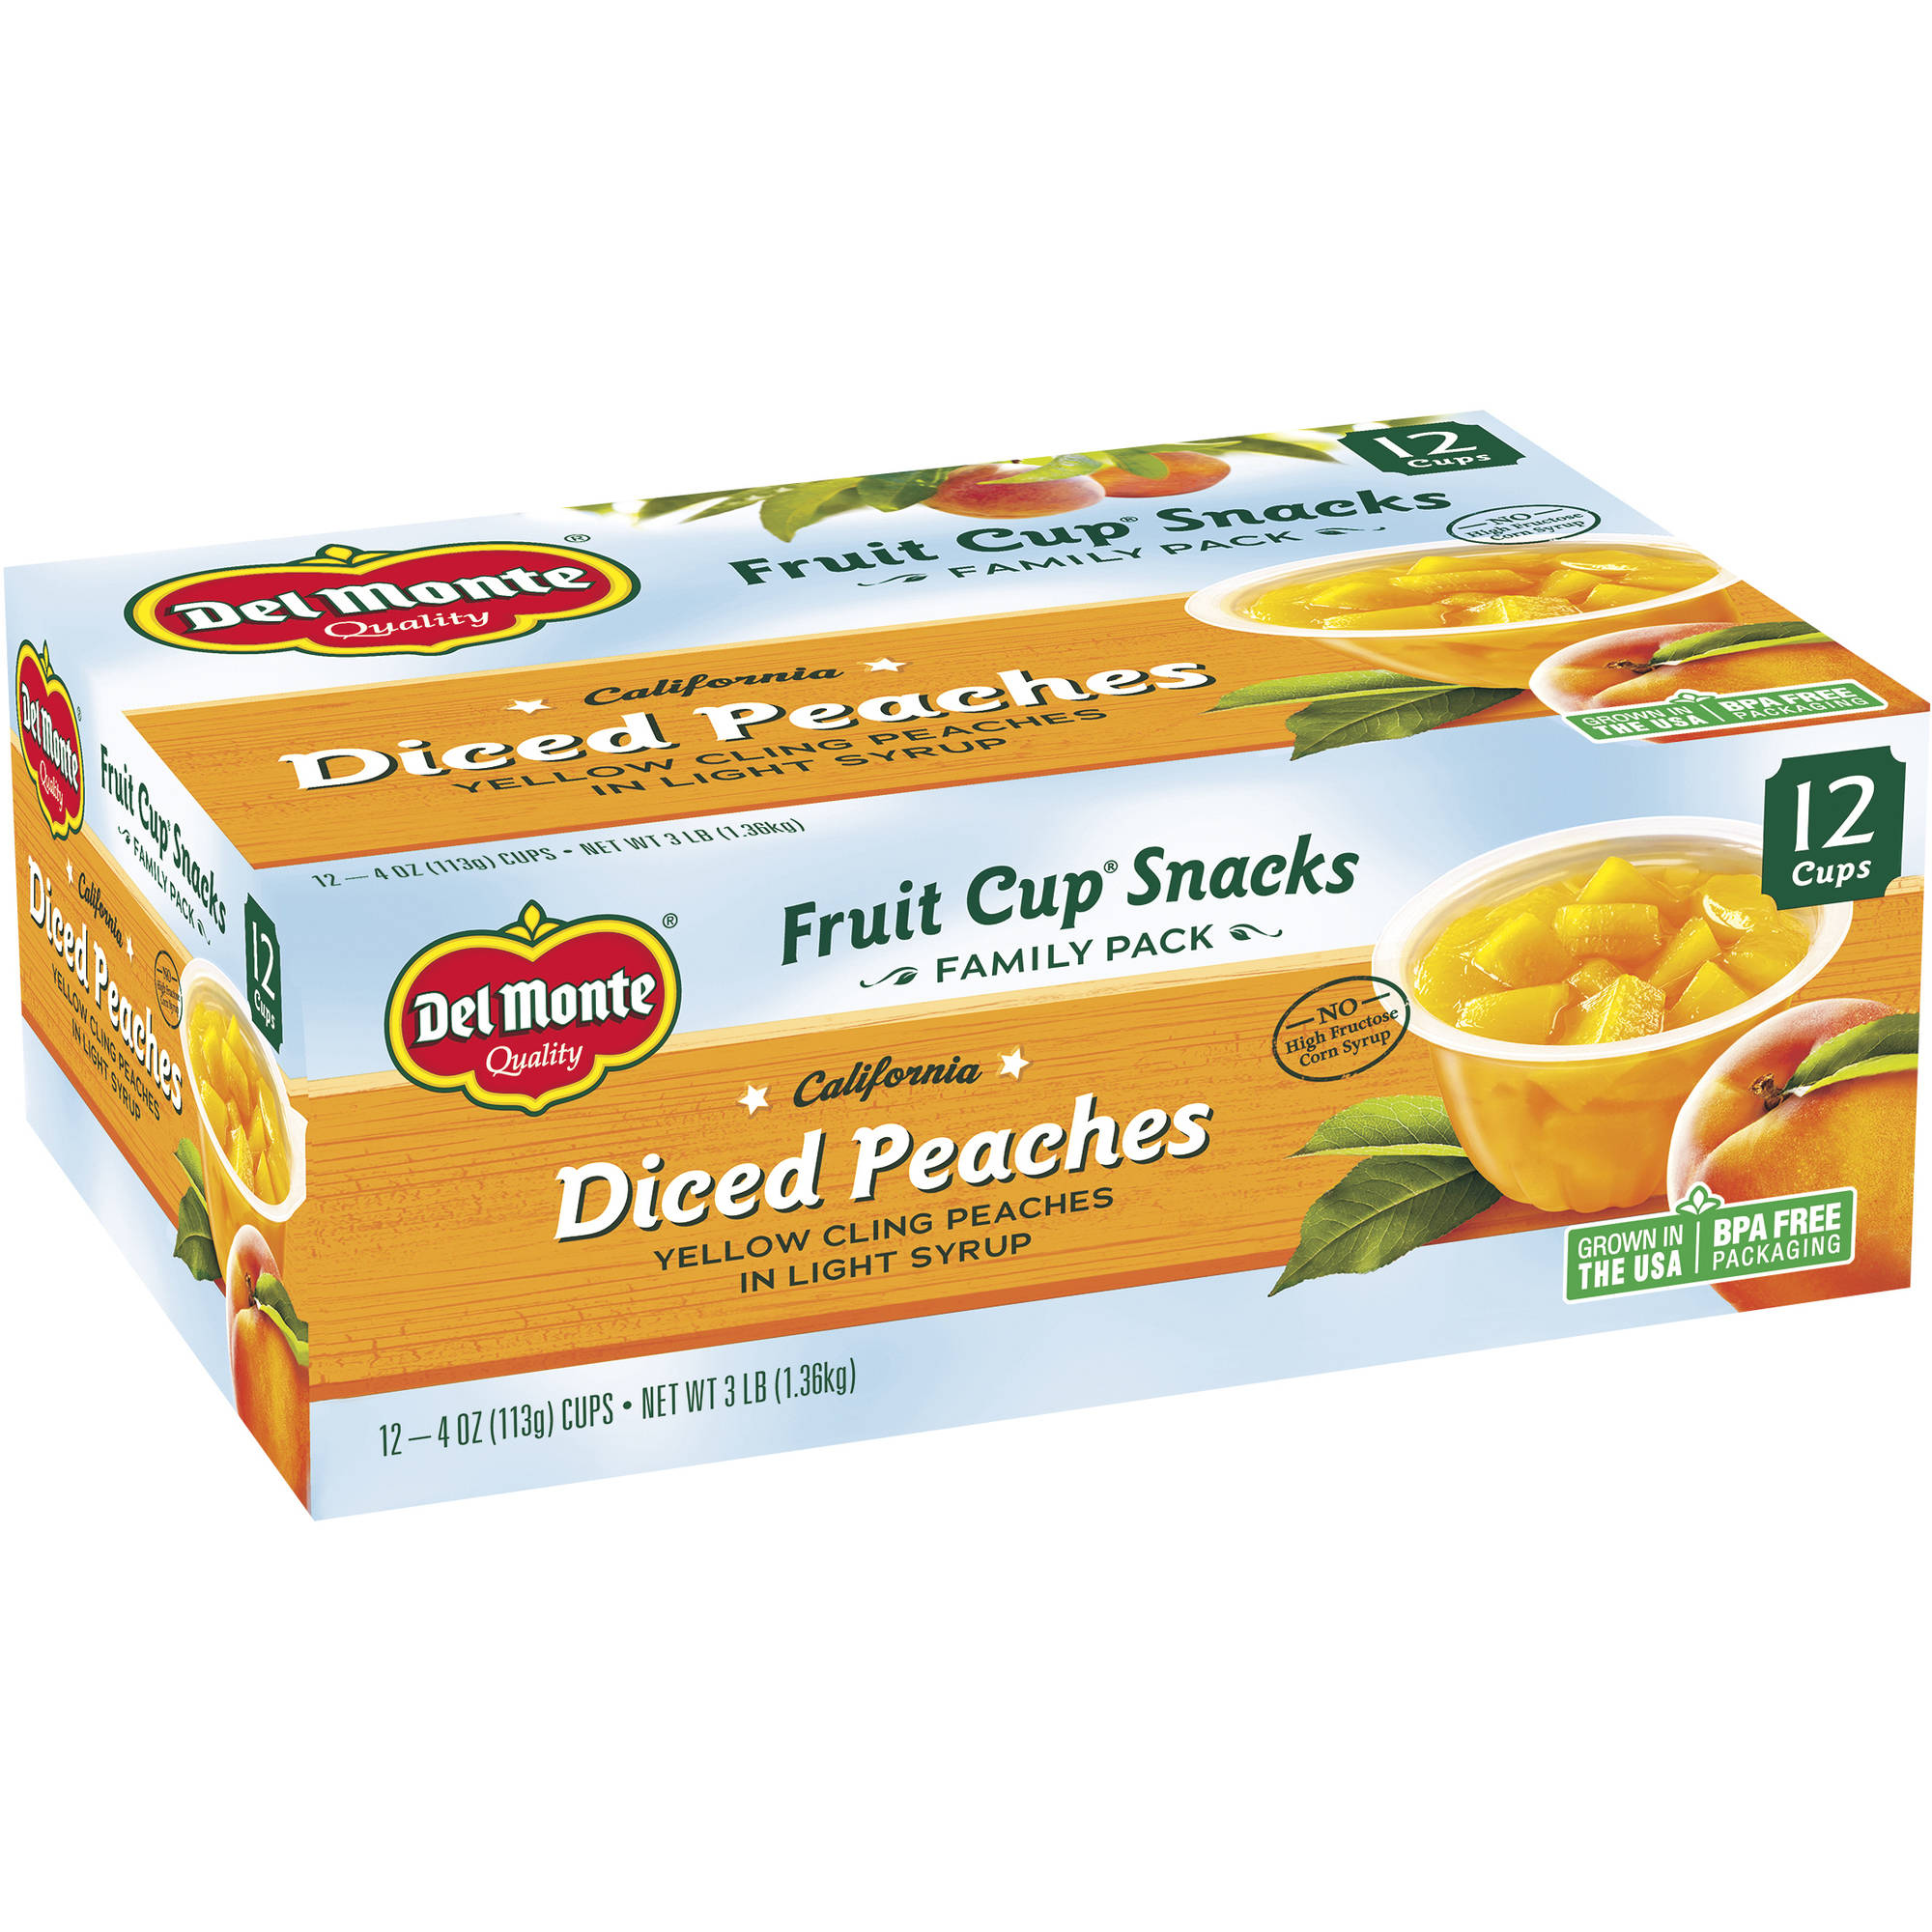 Del Monte Diced Peaches Fruit Cup Snacks, 4 oz, 12 ct